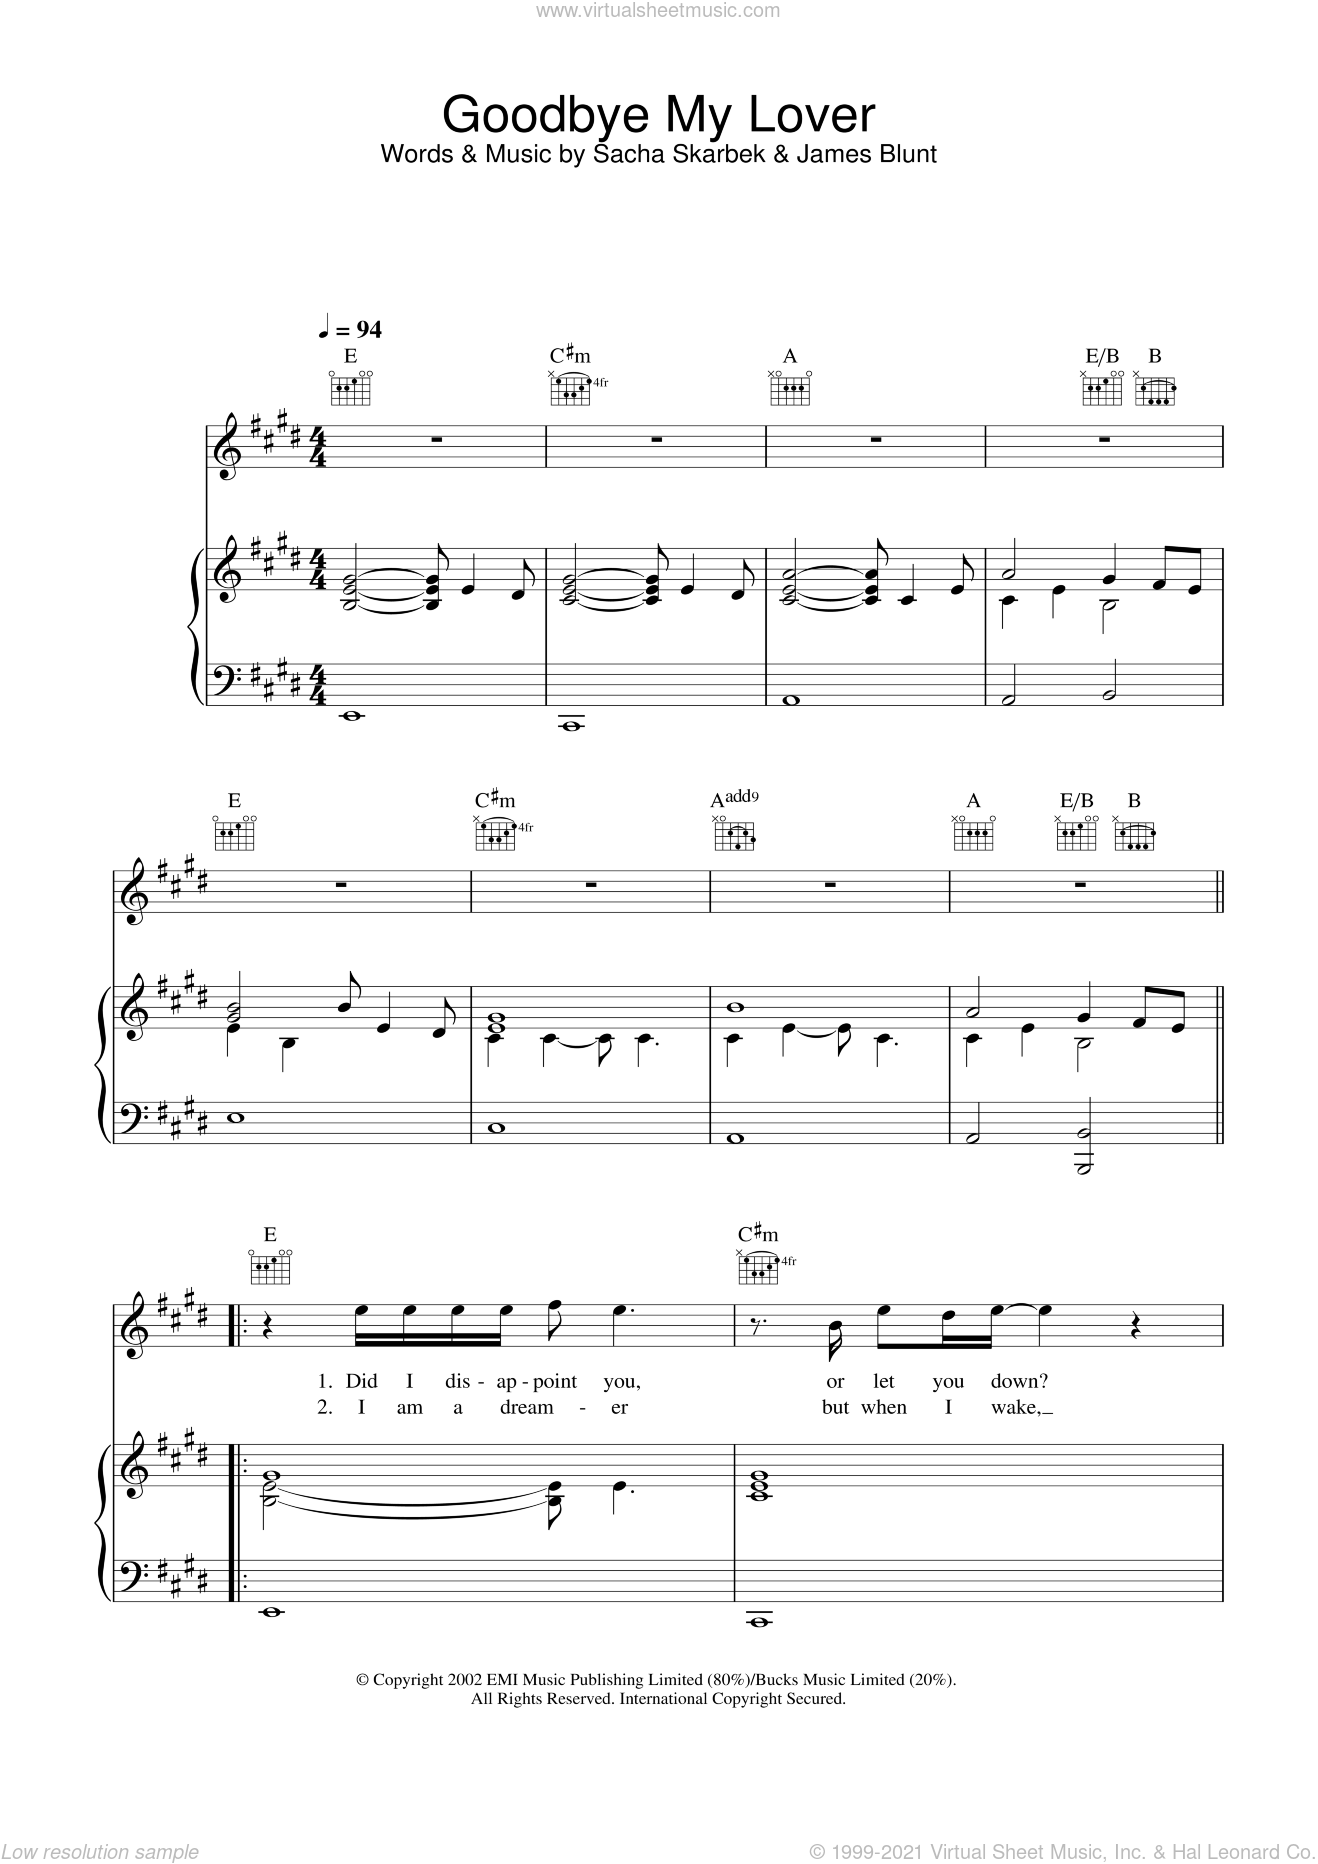 Goodbye My Lover sheet music for voice, piano or guitar by James Blunt and Sacha Skarbek, intermediate skill level